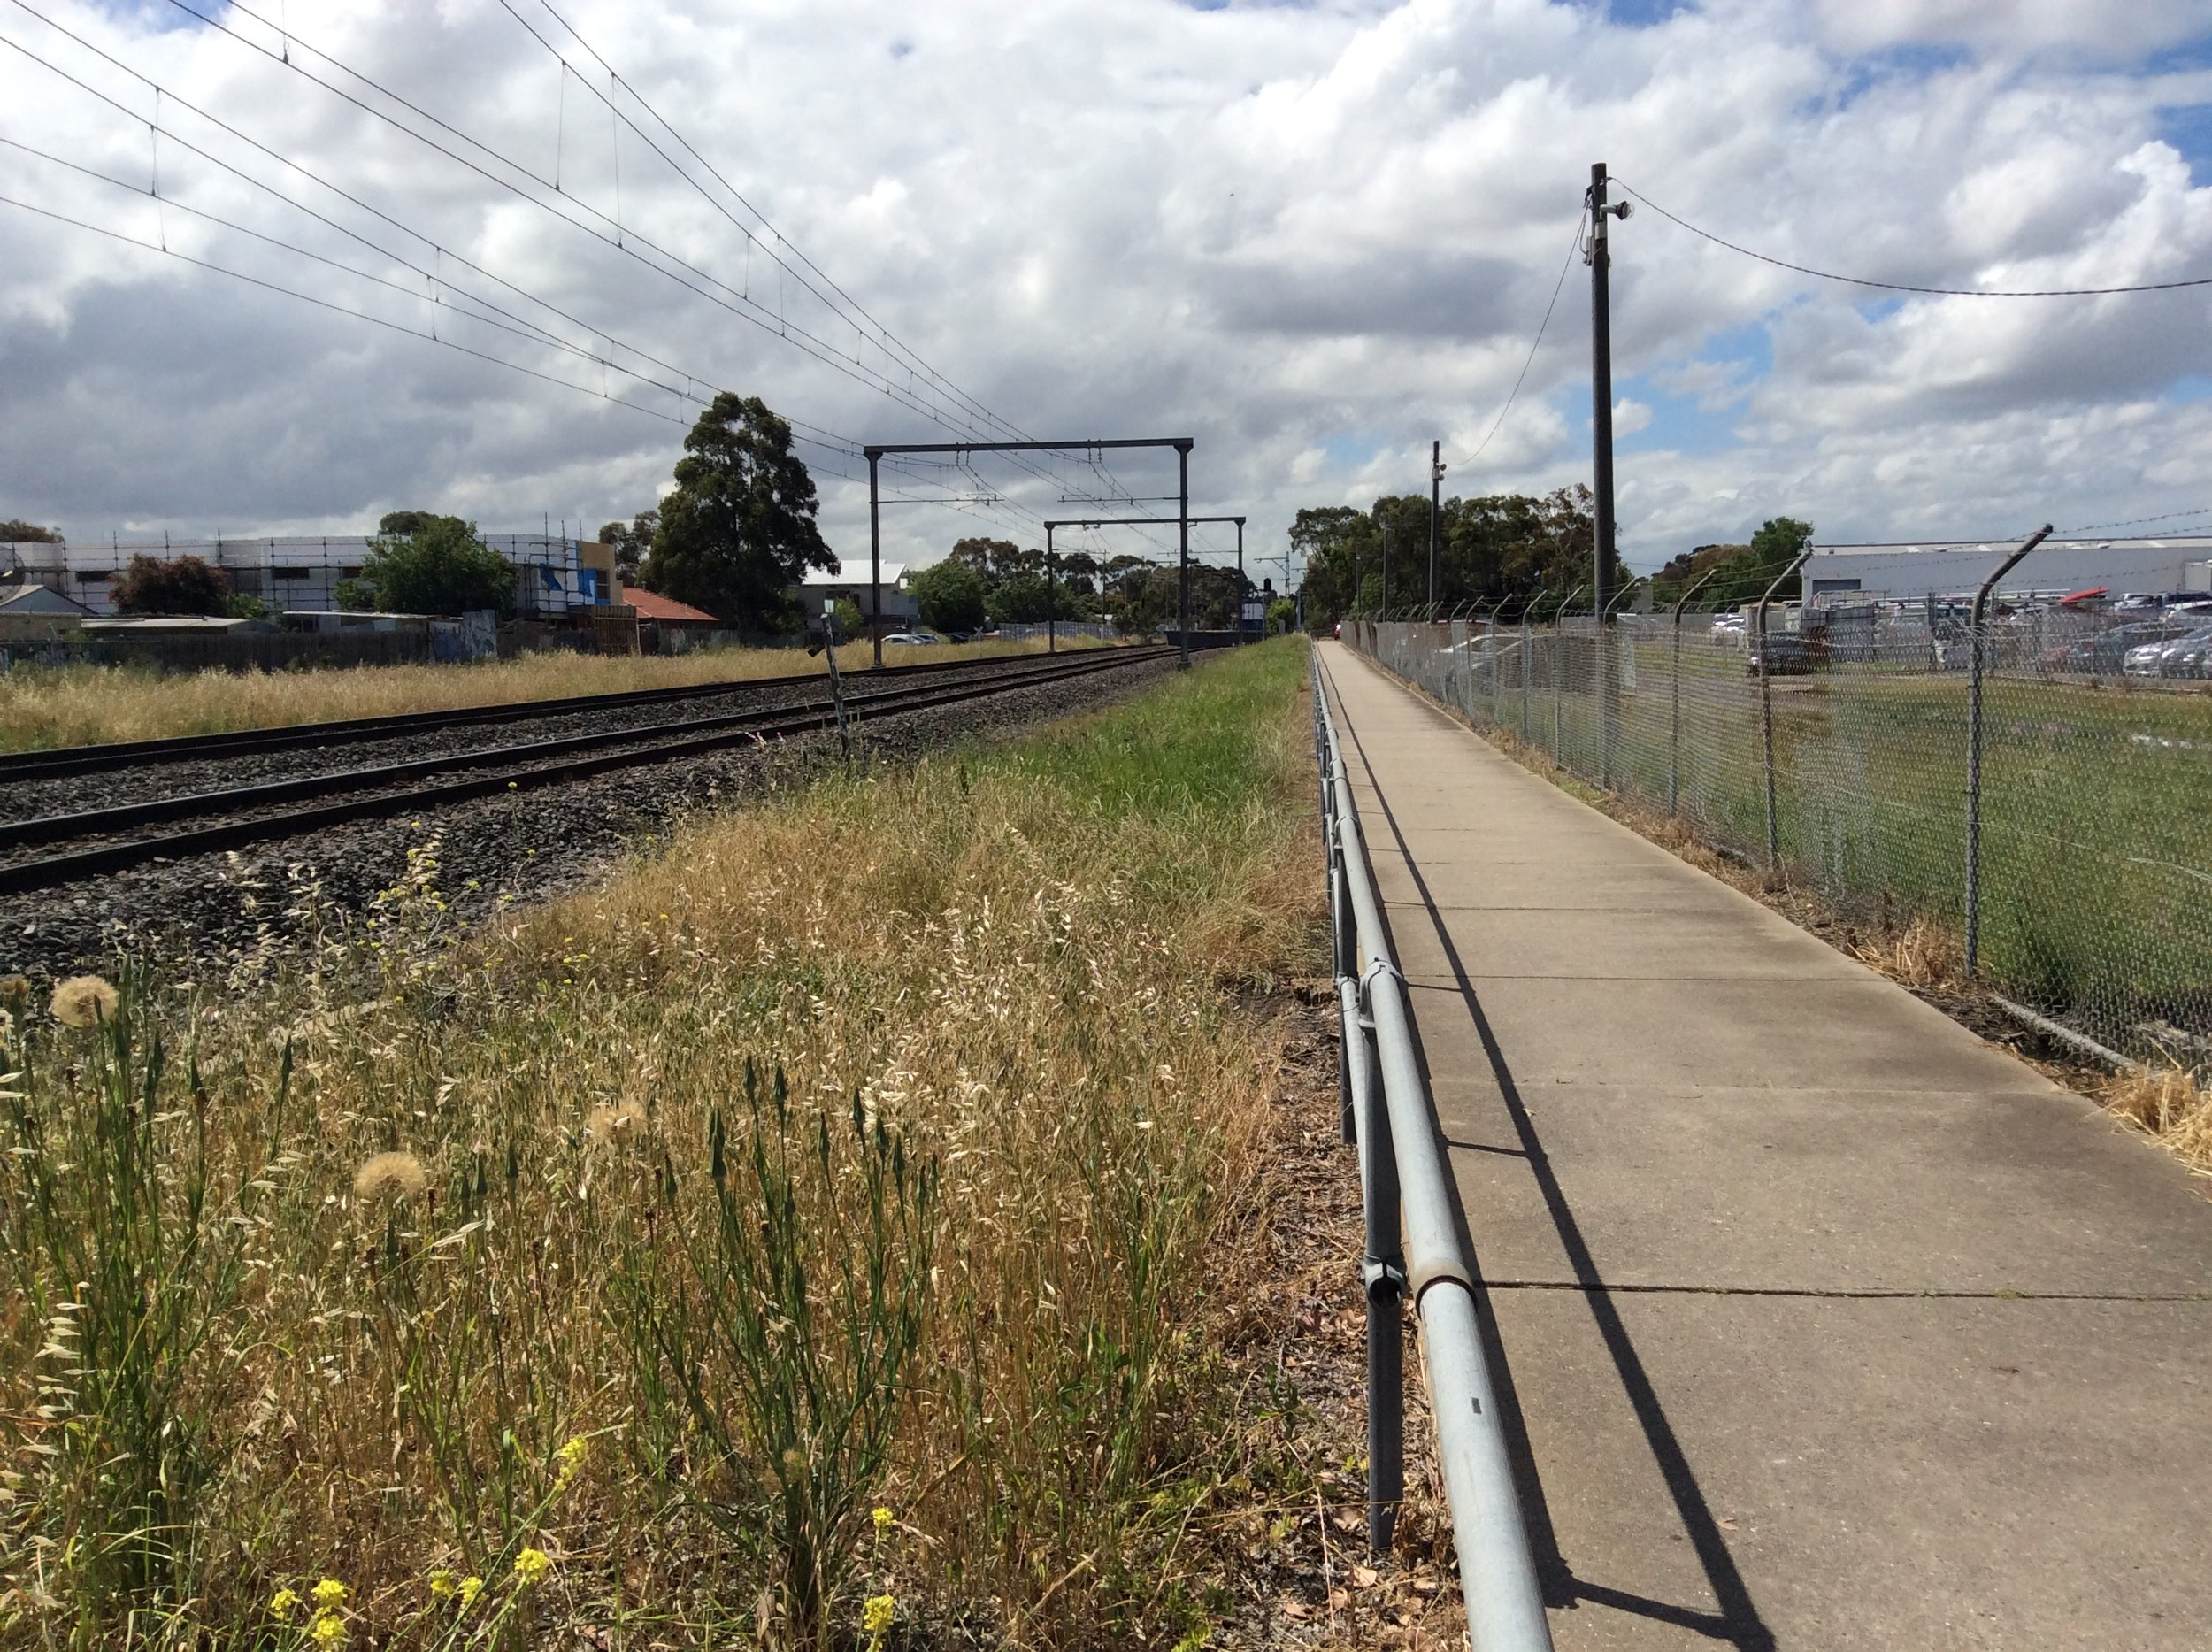 Looking north from near Ararat Ave to Merlynston station /Plaisted Street.